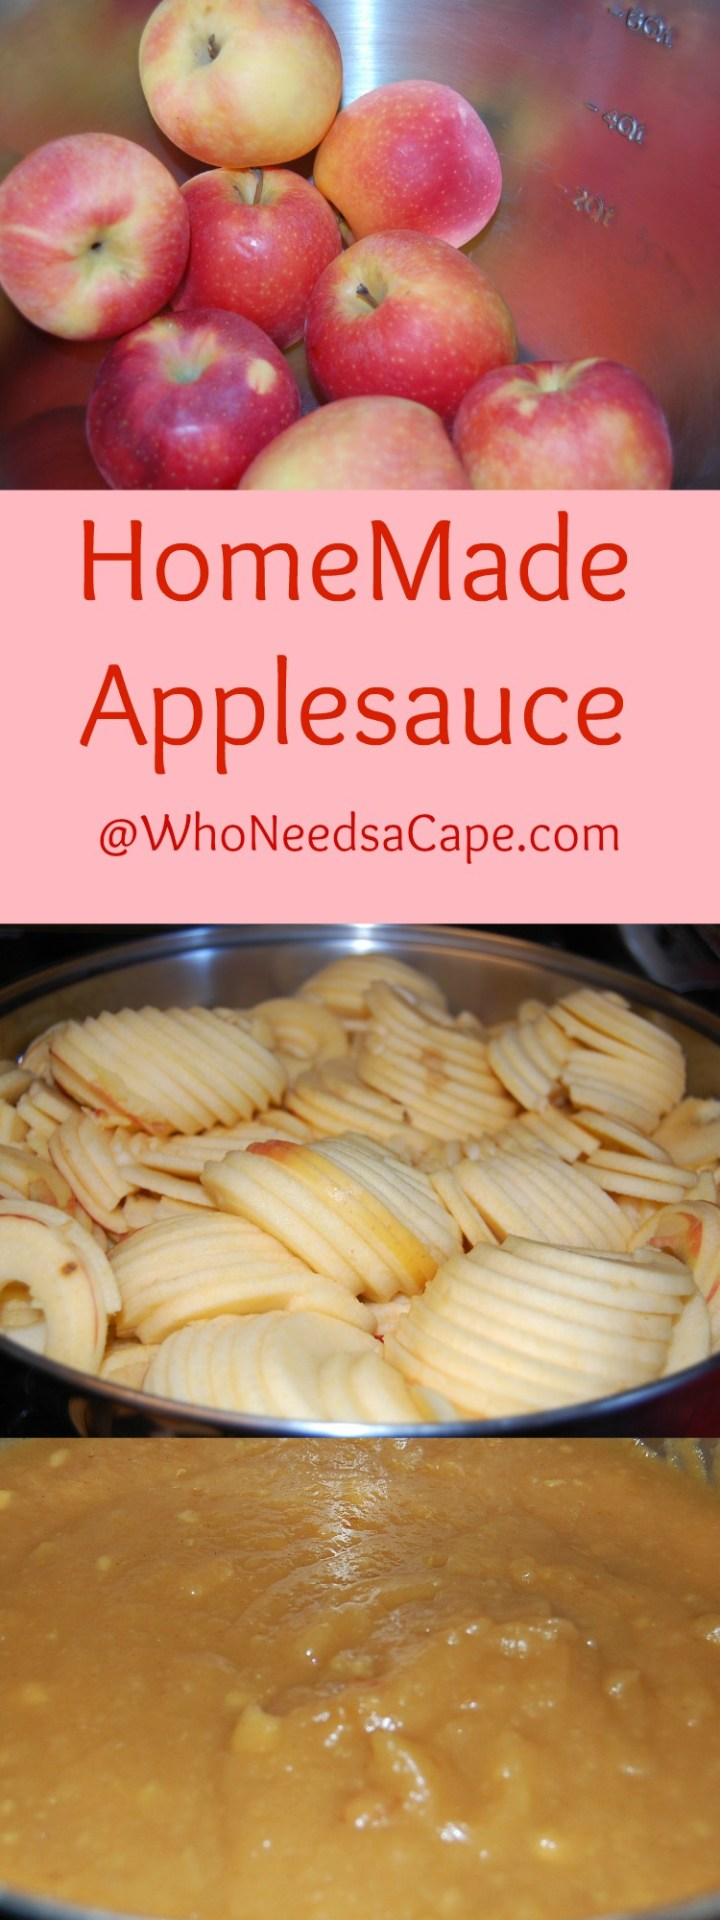 HomeMade Applesauce is one of falls best treats! A snap to make - you're going to love it.